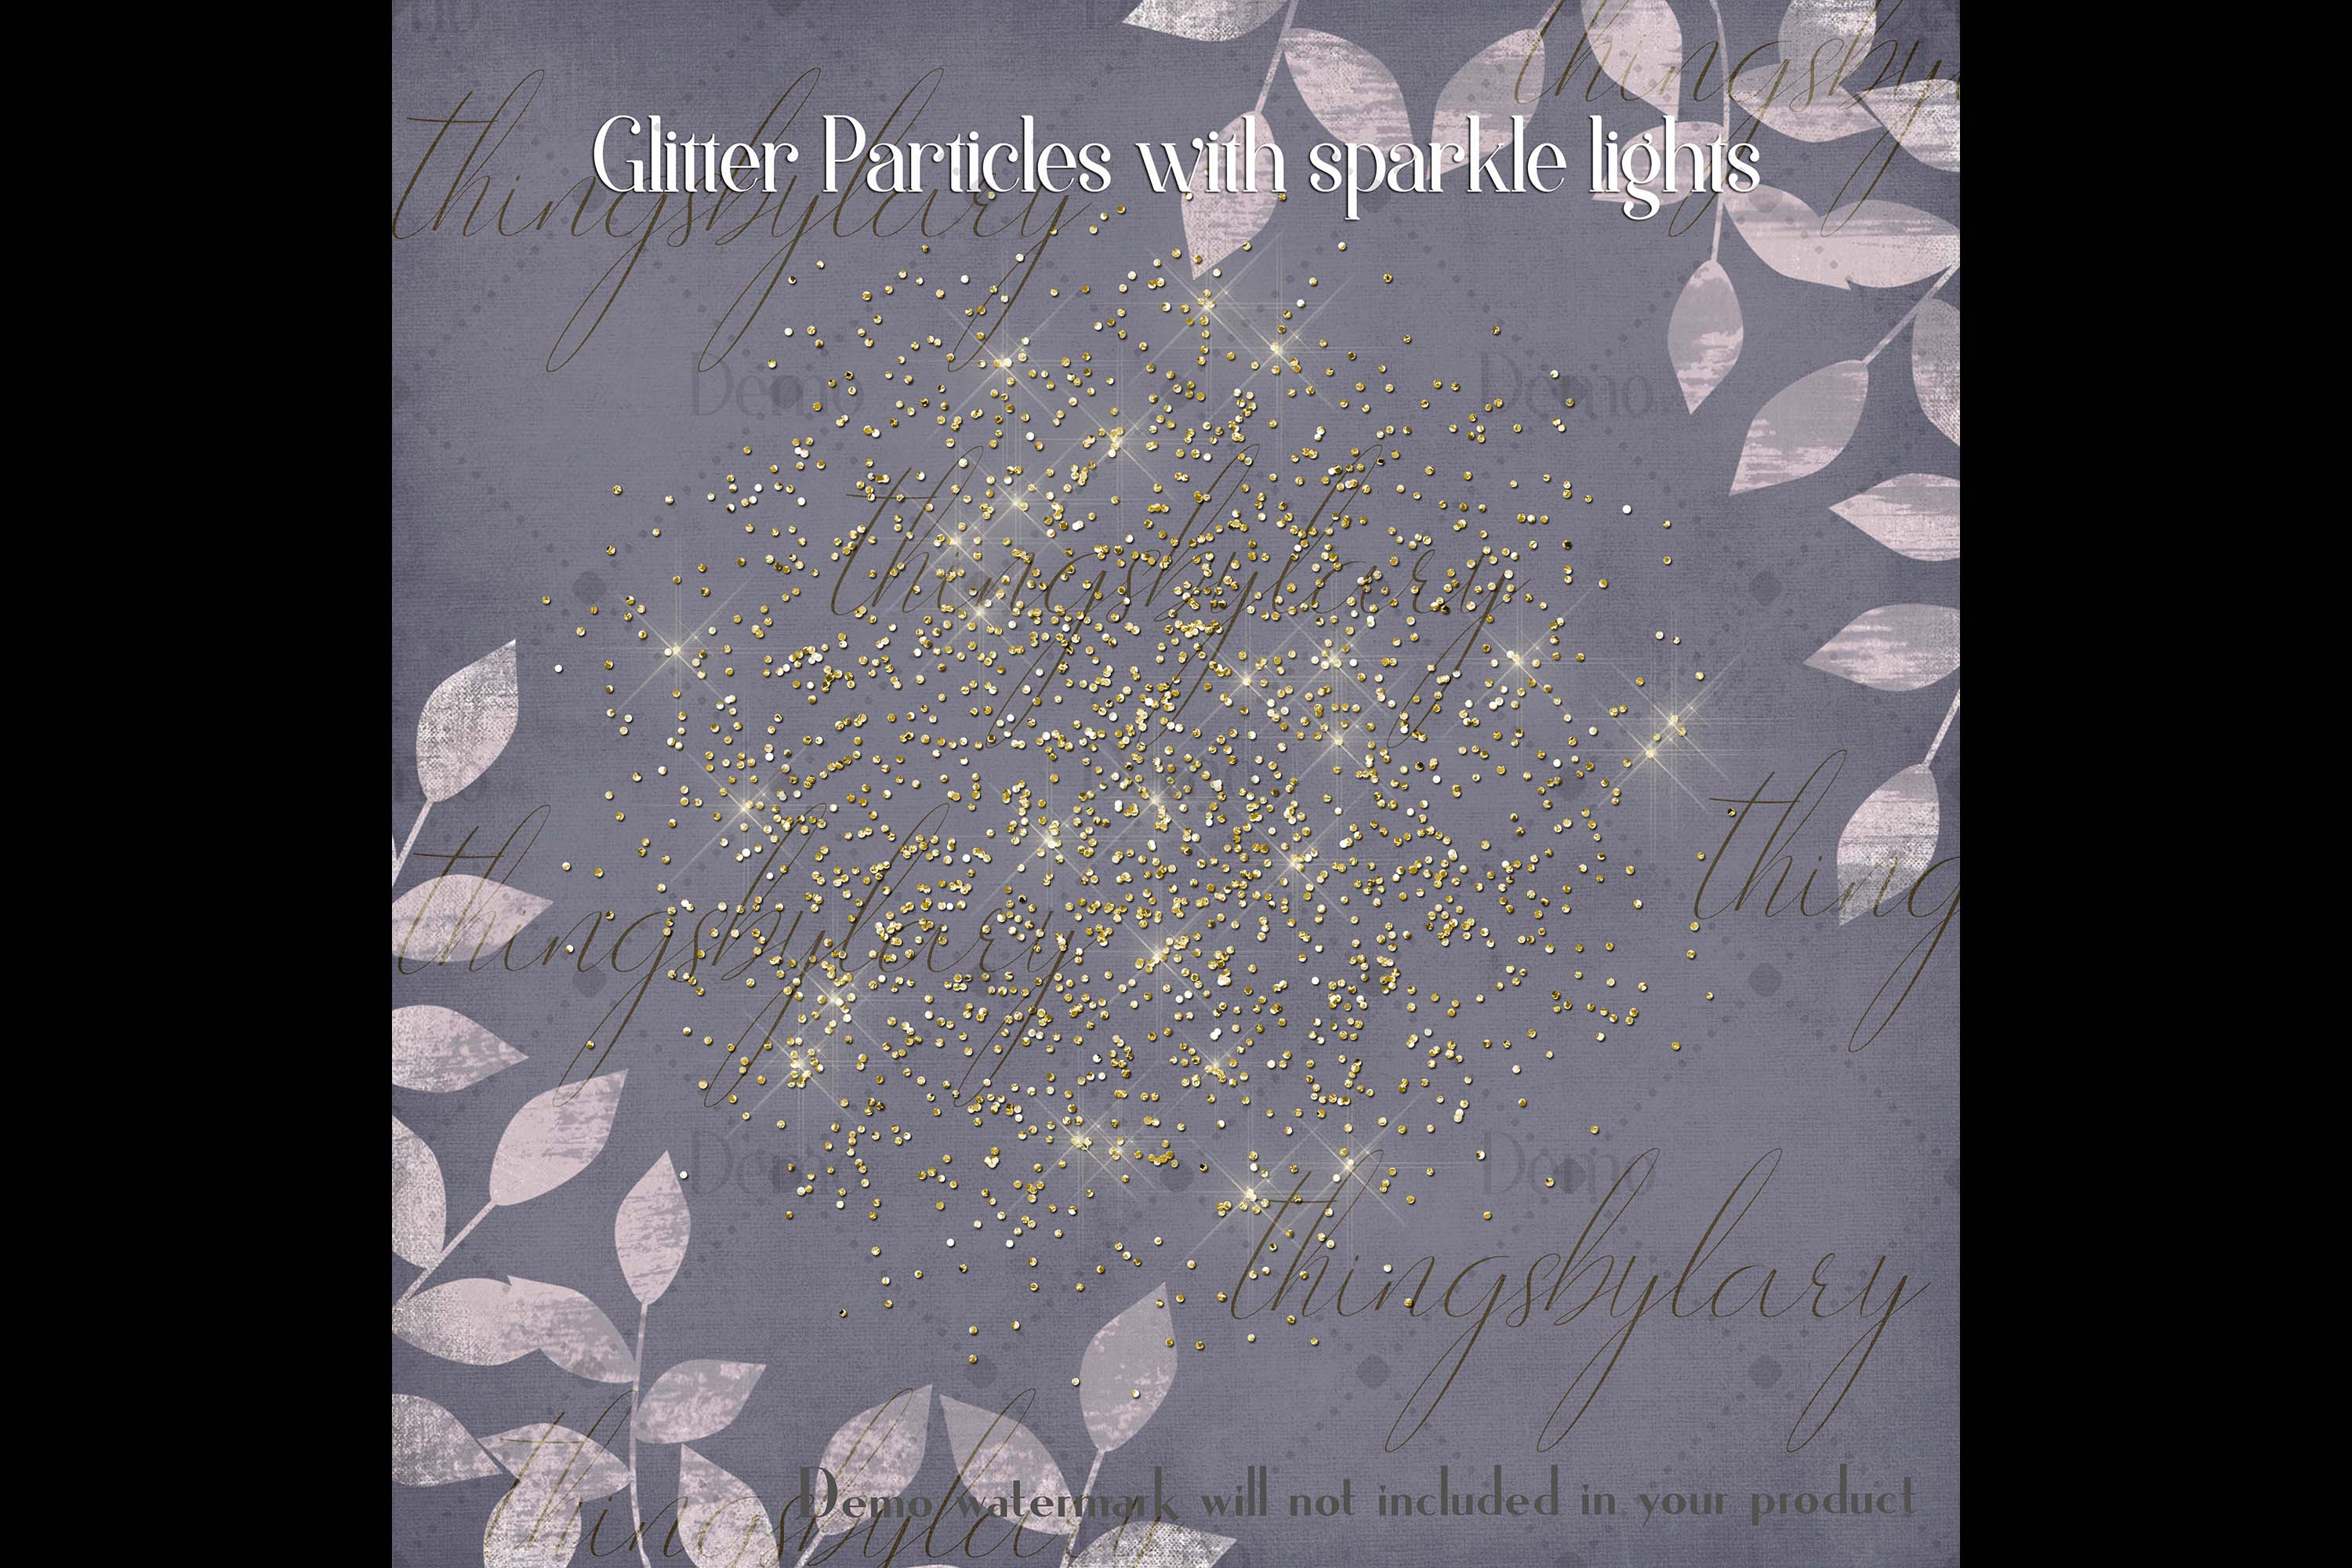 32 Glitter Particles Overlay Images Glitter Dust Confetti example image 2